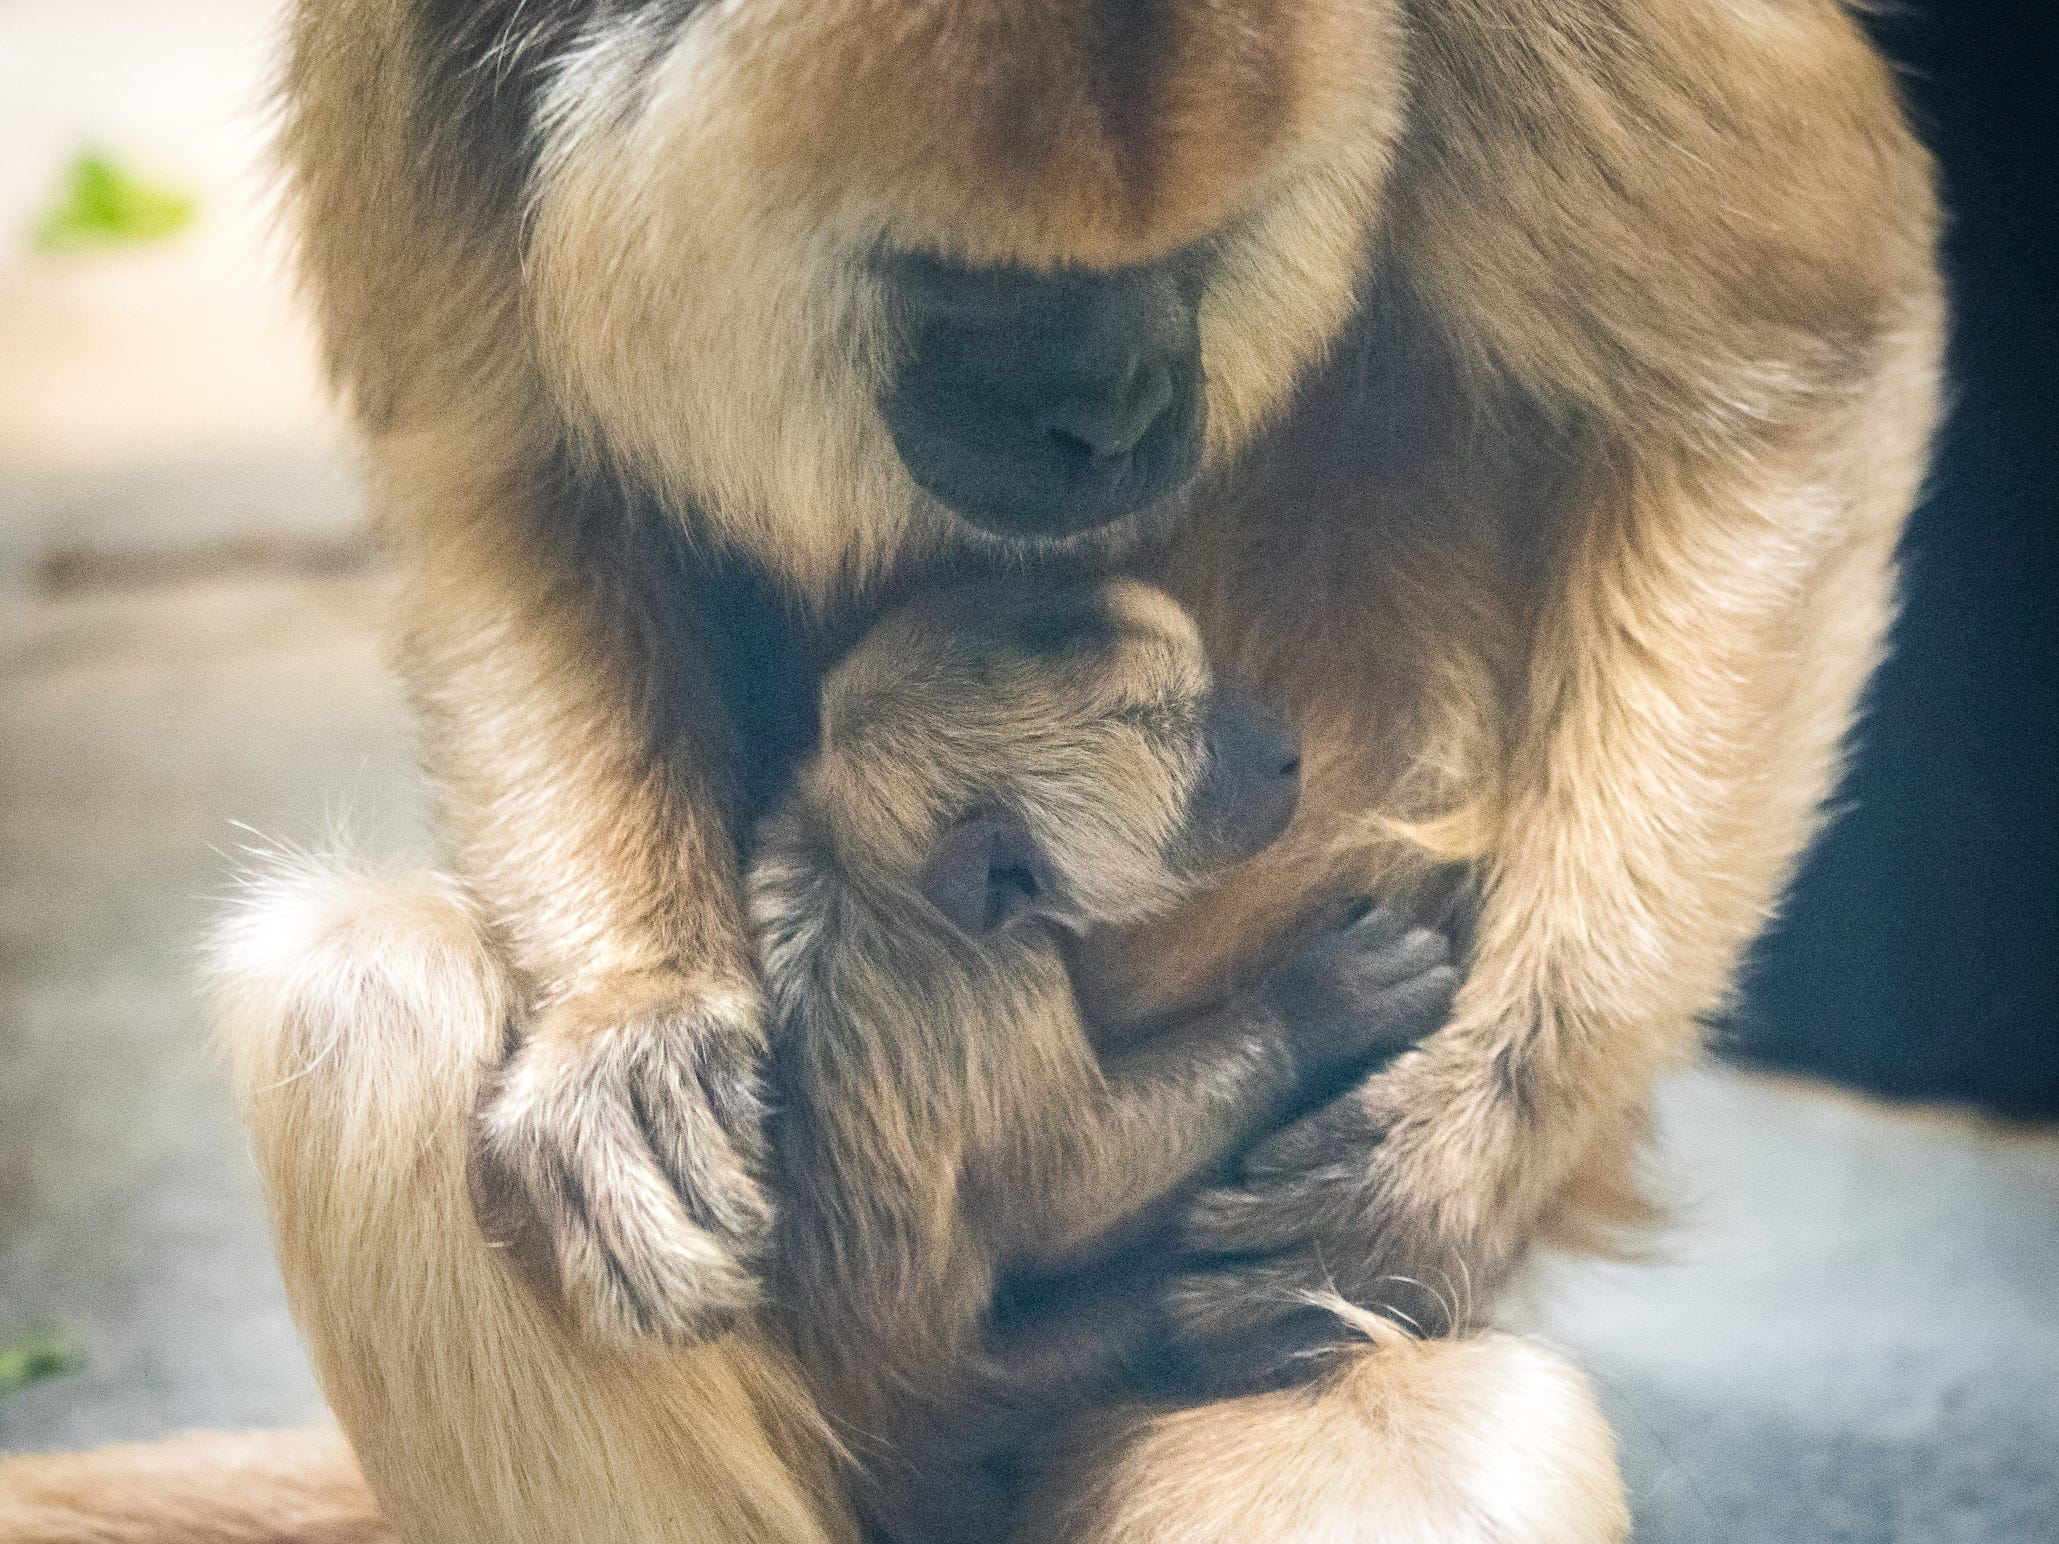 This baby howler monkey was born Jan. 16 and can be seen at the Cleveland Metroparks Zoo.